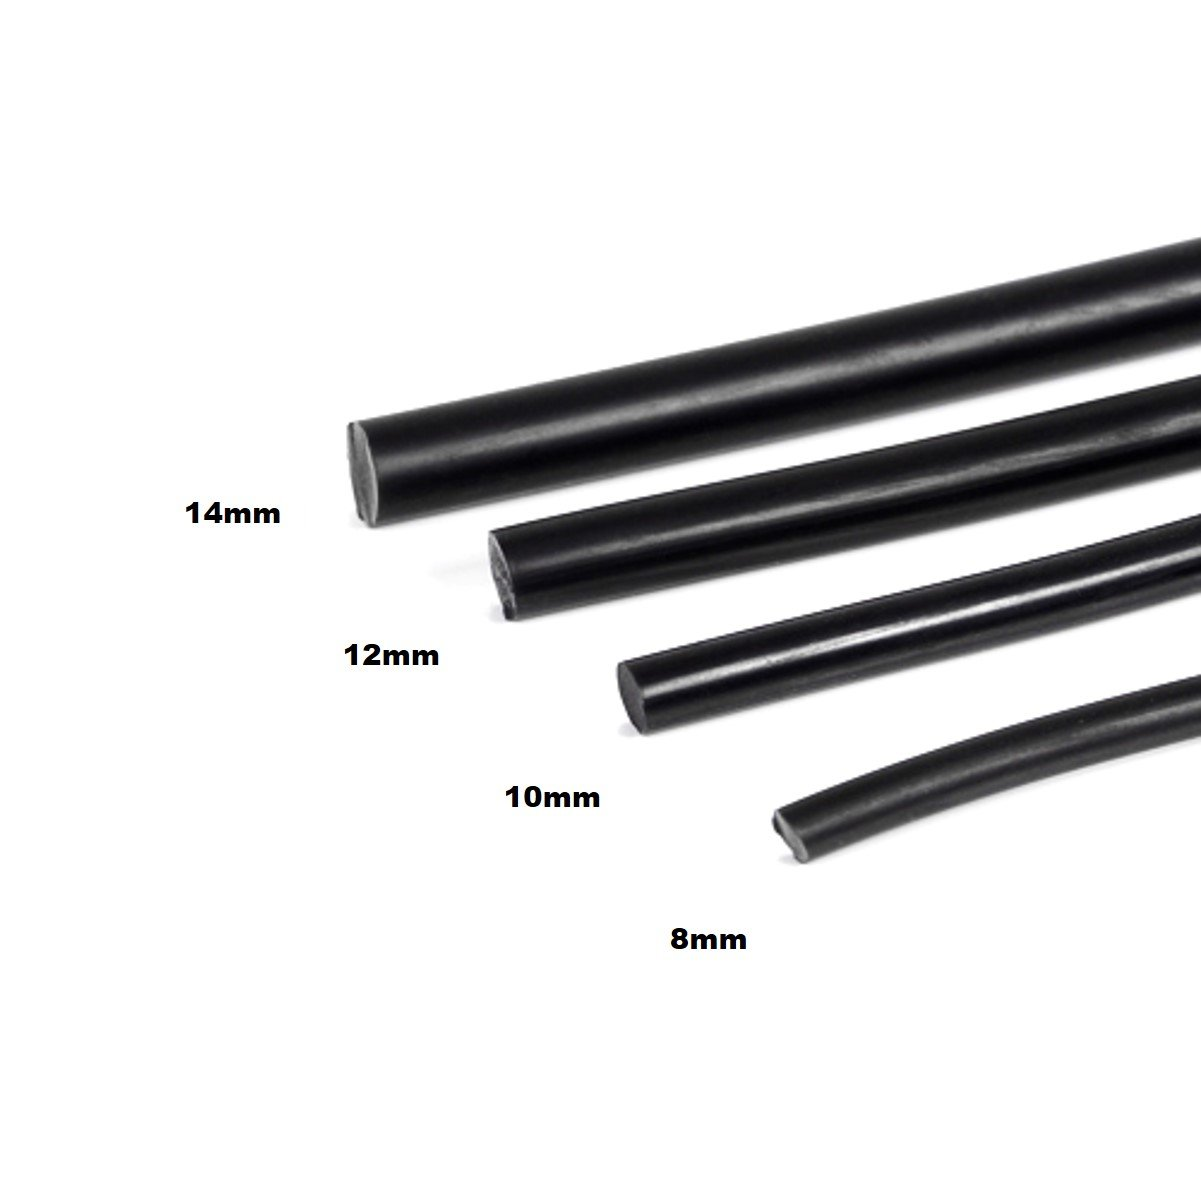 BARROW Silicone Cord For Bending Acrylic Tube (10MM, black)